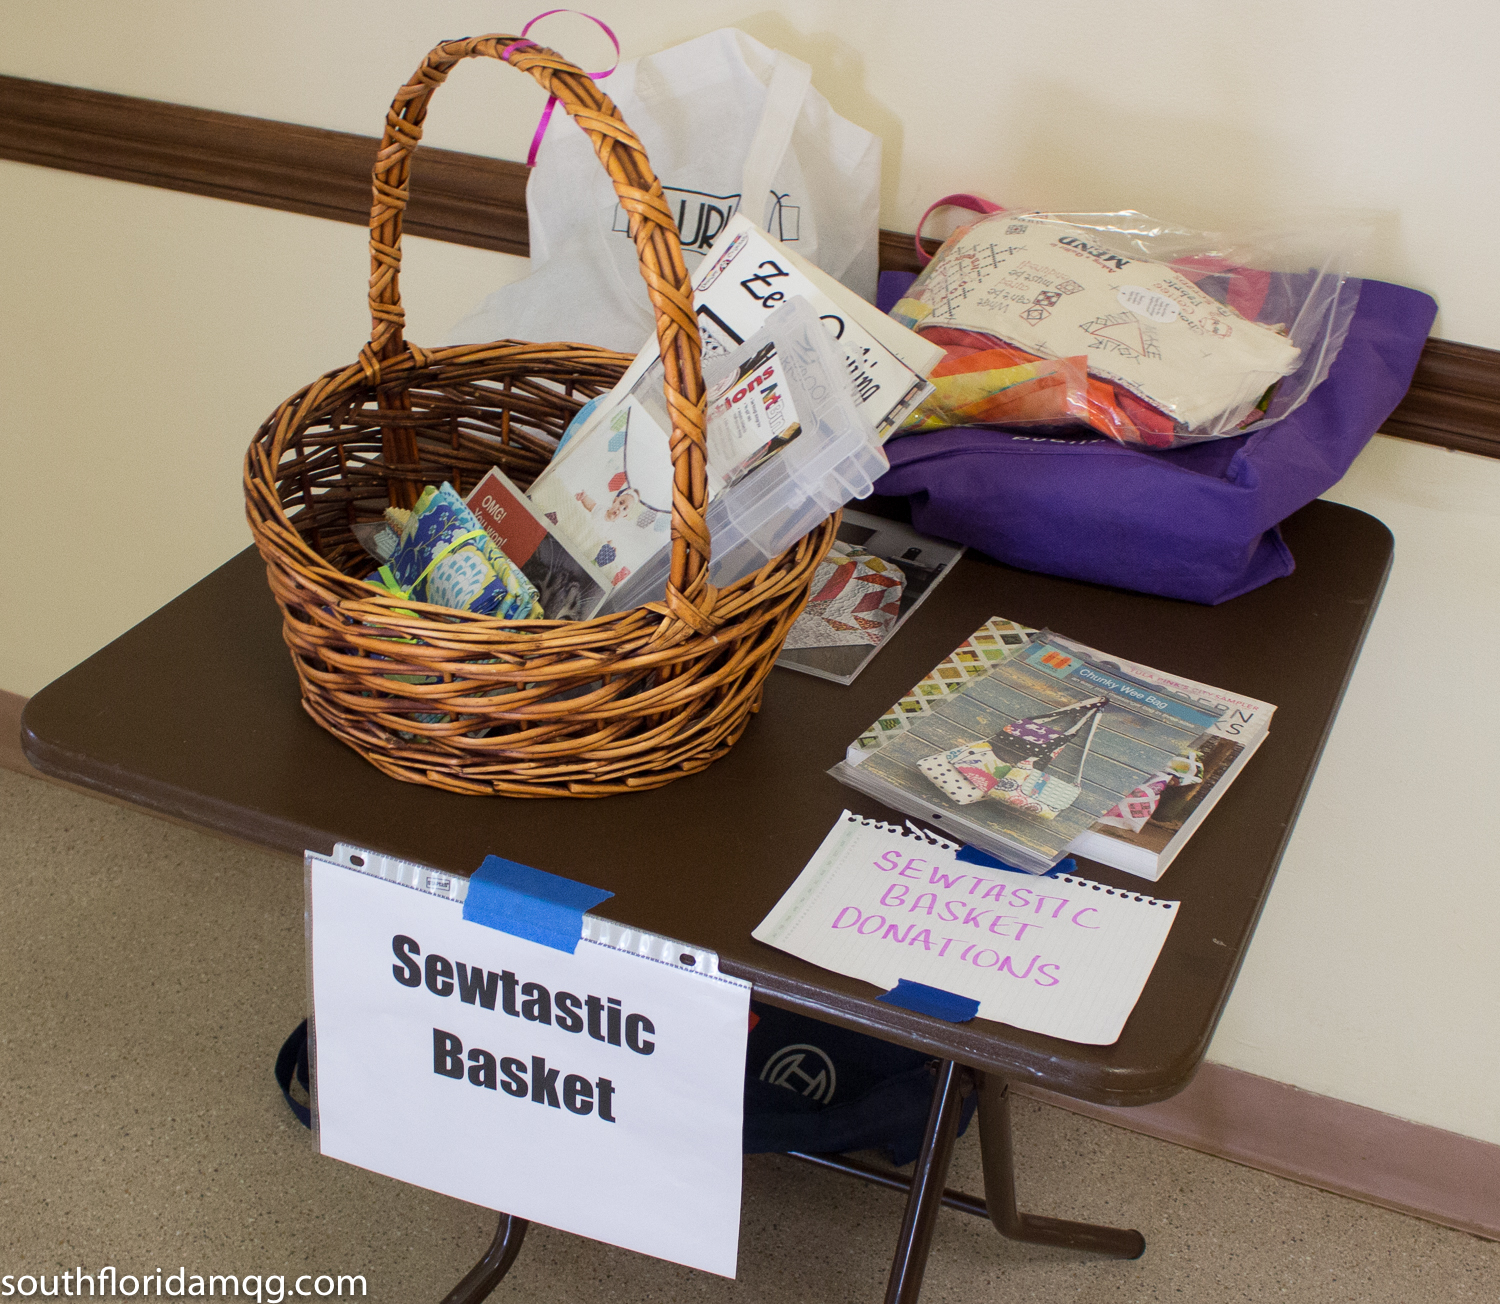 Gathering up donations for the Sewtastic Raffle basket fundraiser for June meeting